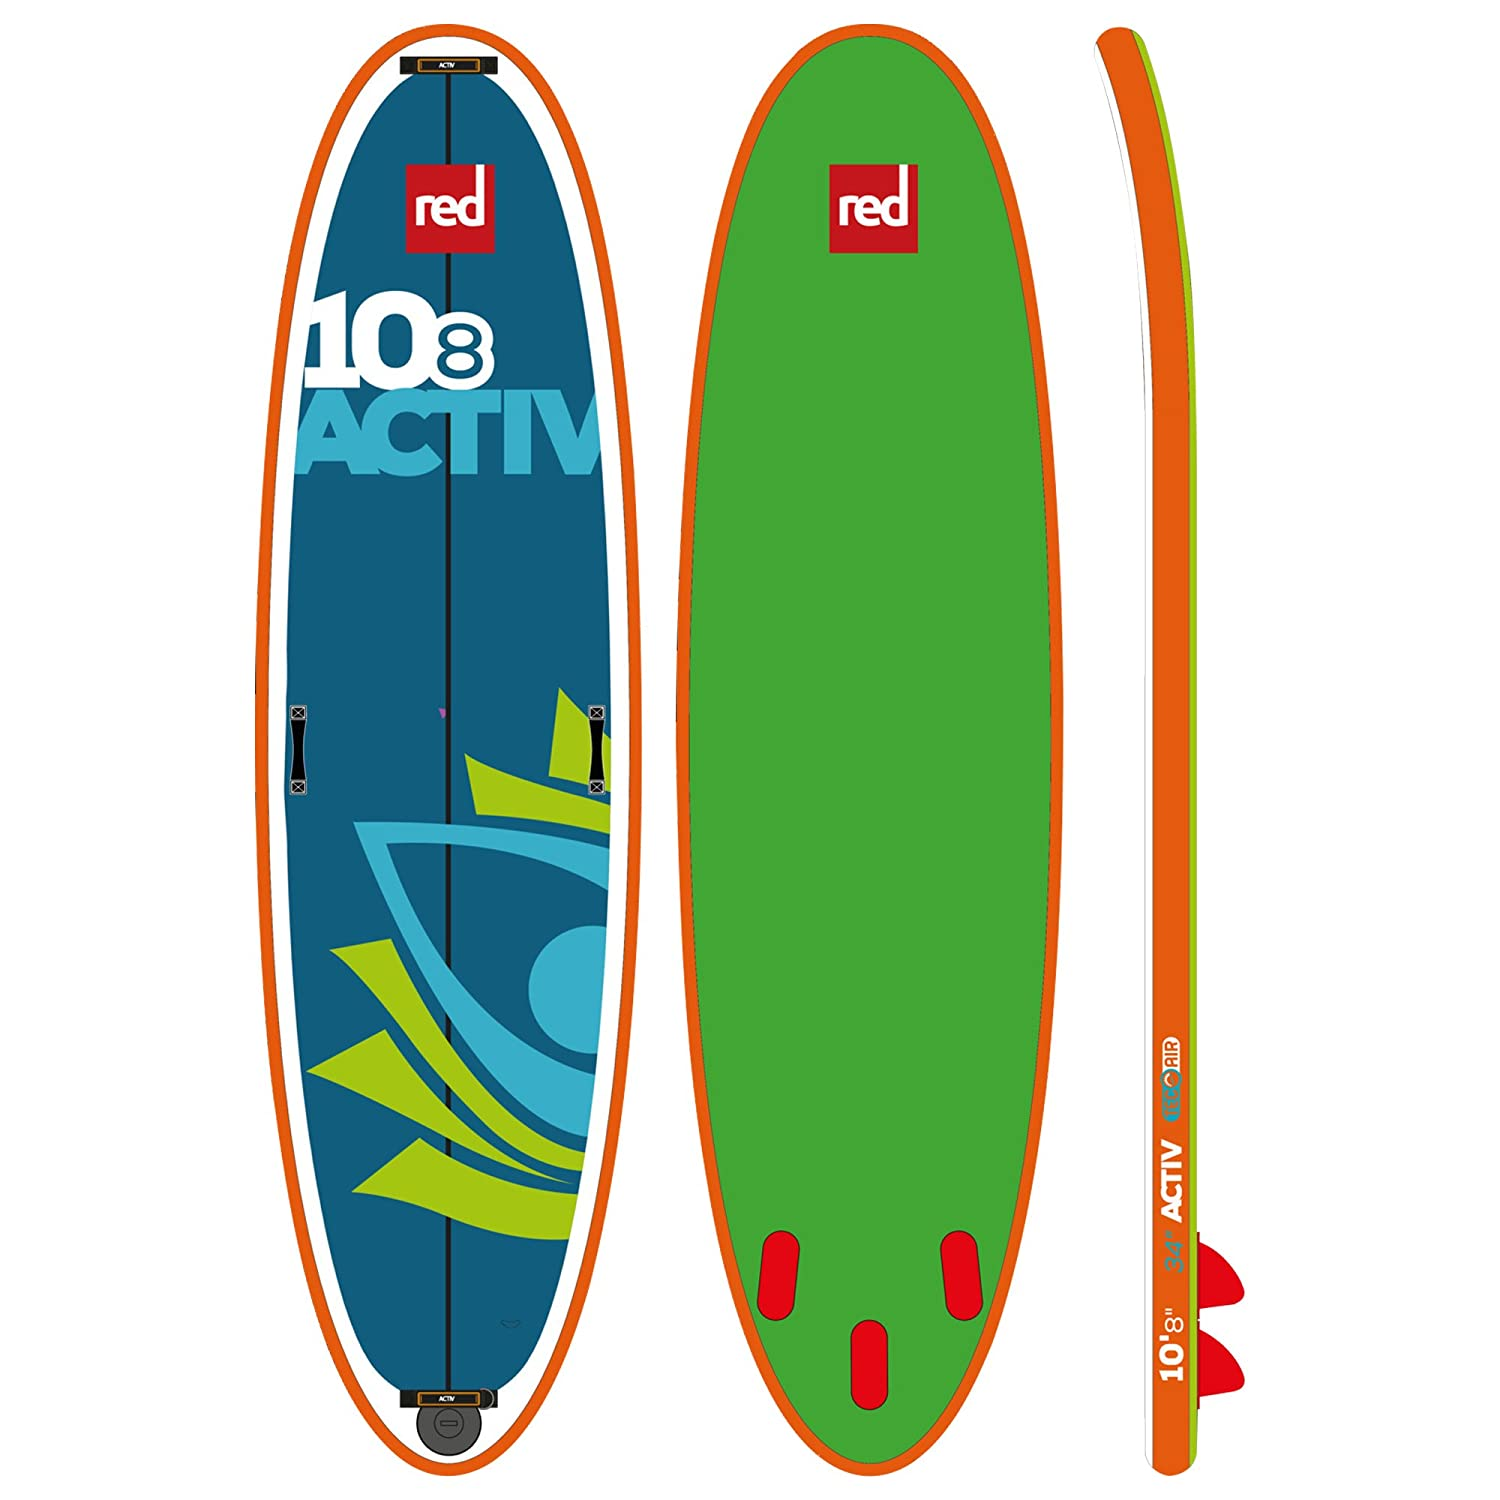 Red Paddle Co SRED6108A - Tablas Paddle Surf hinchables, Color Azul, 108